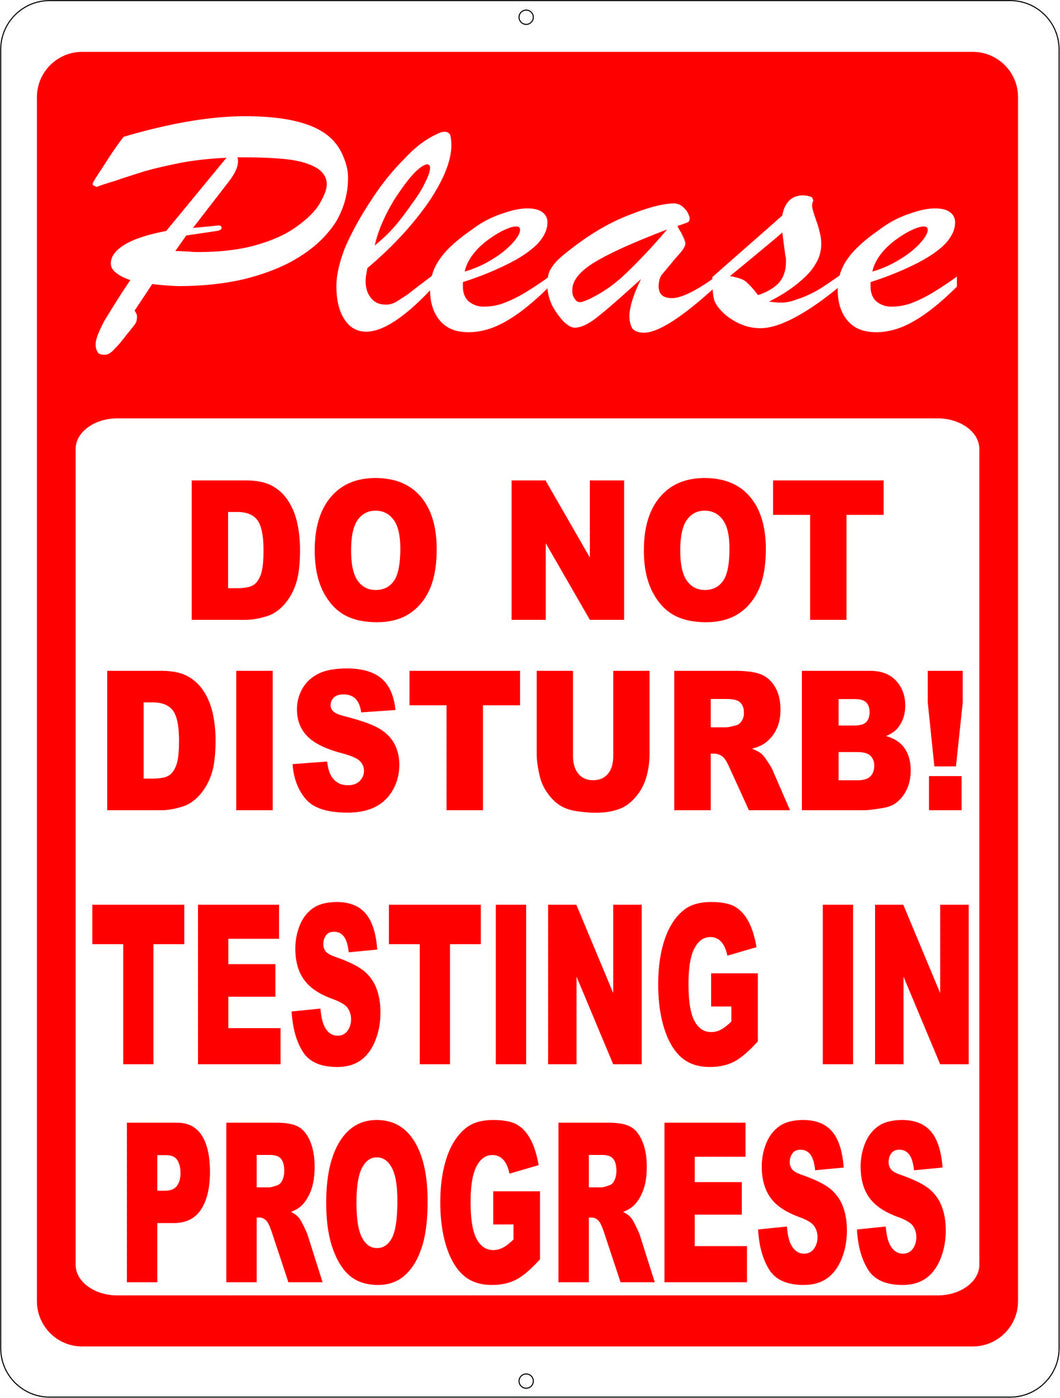 Please Do Not Disturb Testing in Progress Sign - Signs & Decals by SalaGraphics